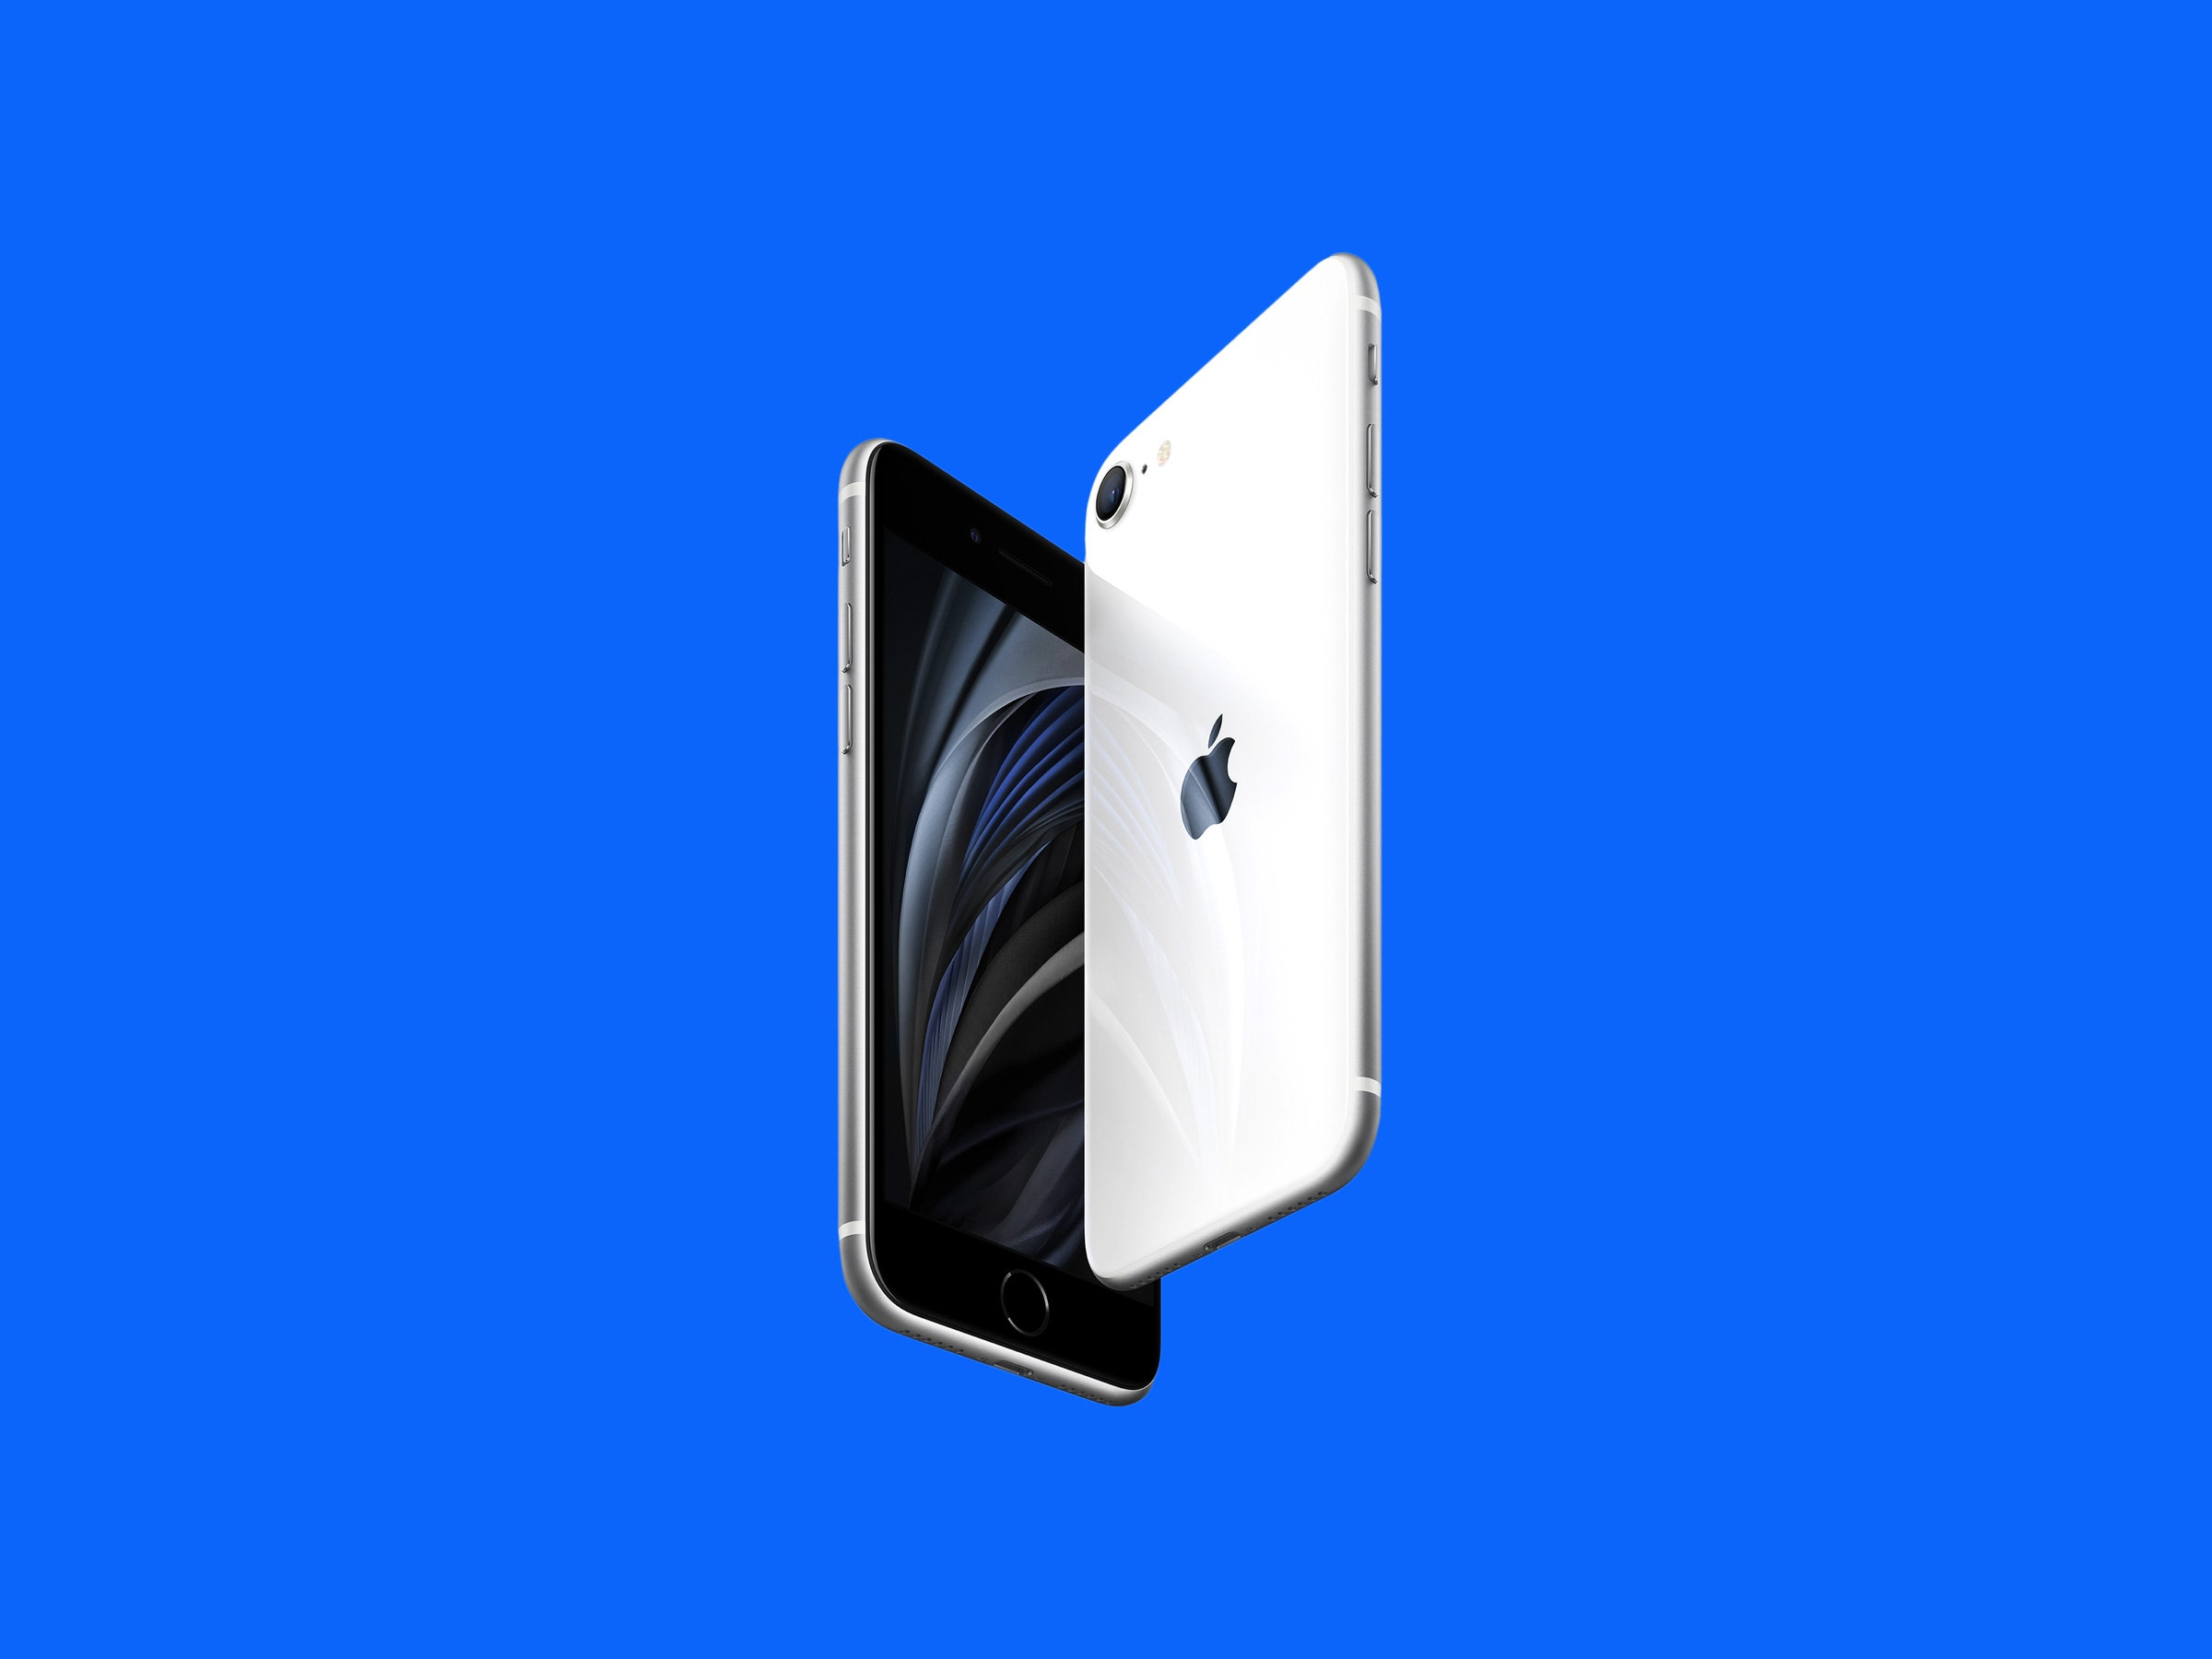 Should you buy the iPhone SE in 2021?